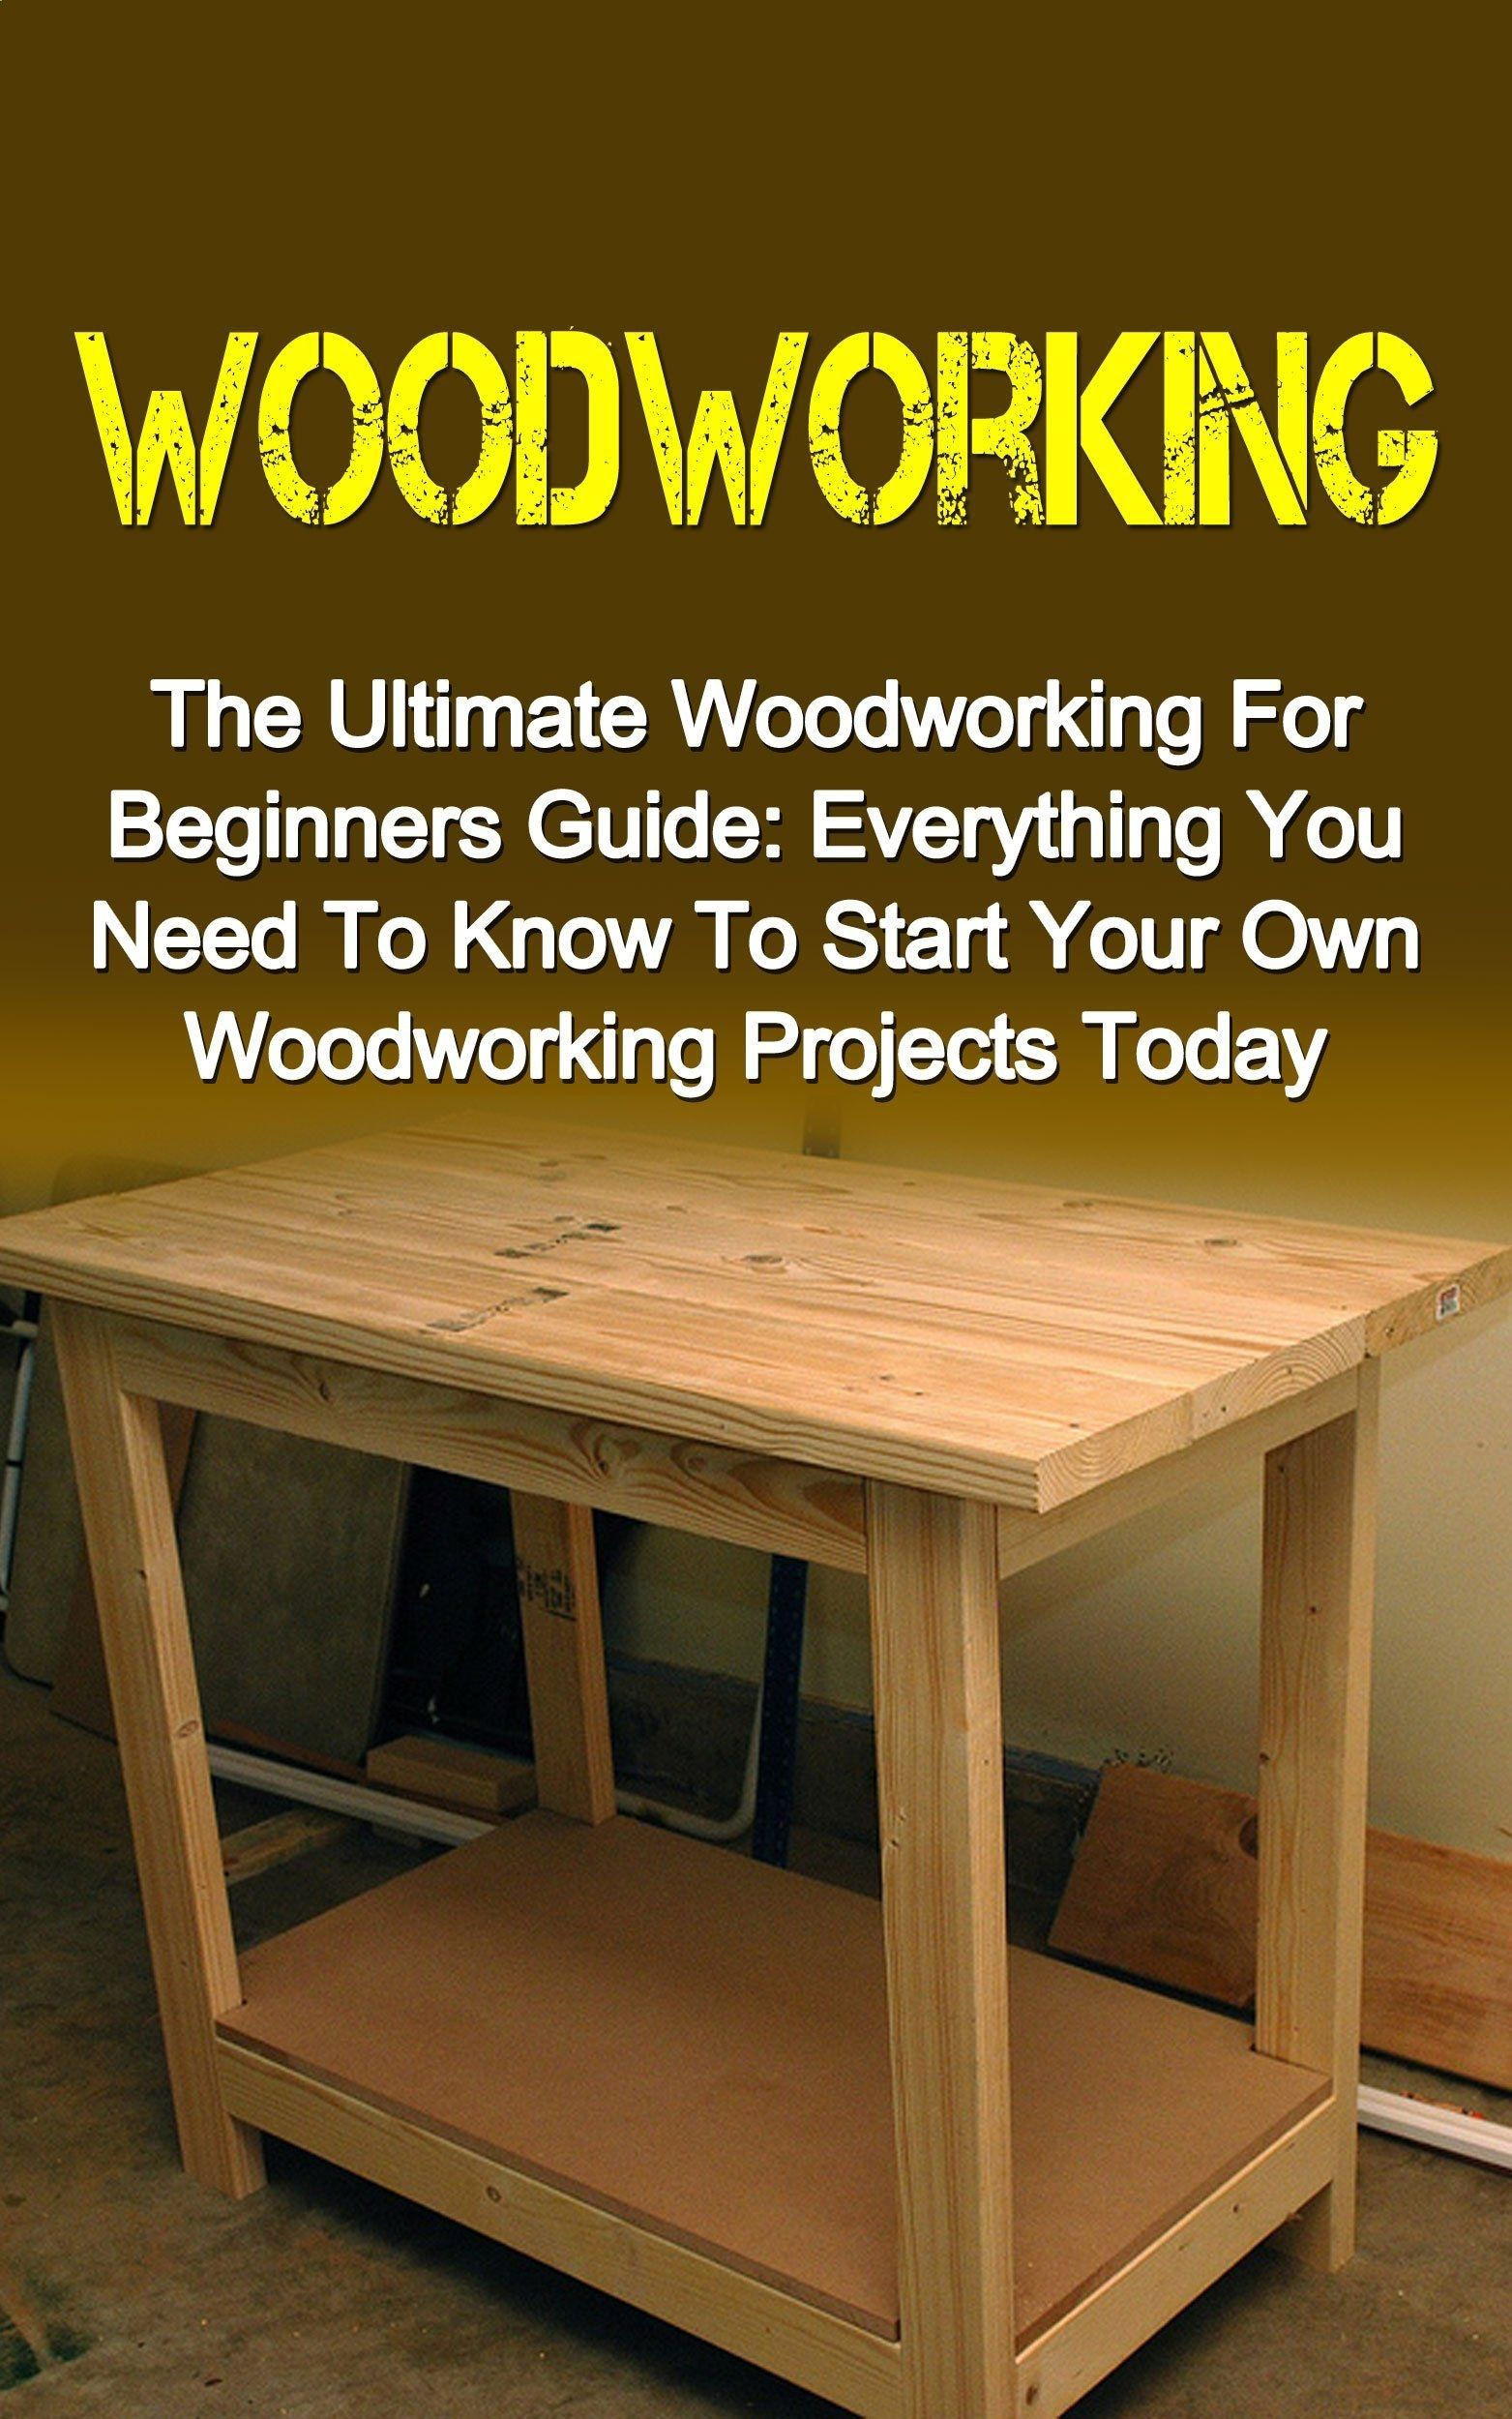 Wood Profit  Woodworking  Woodworking The Ultimate Woodworking For